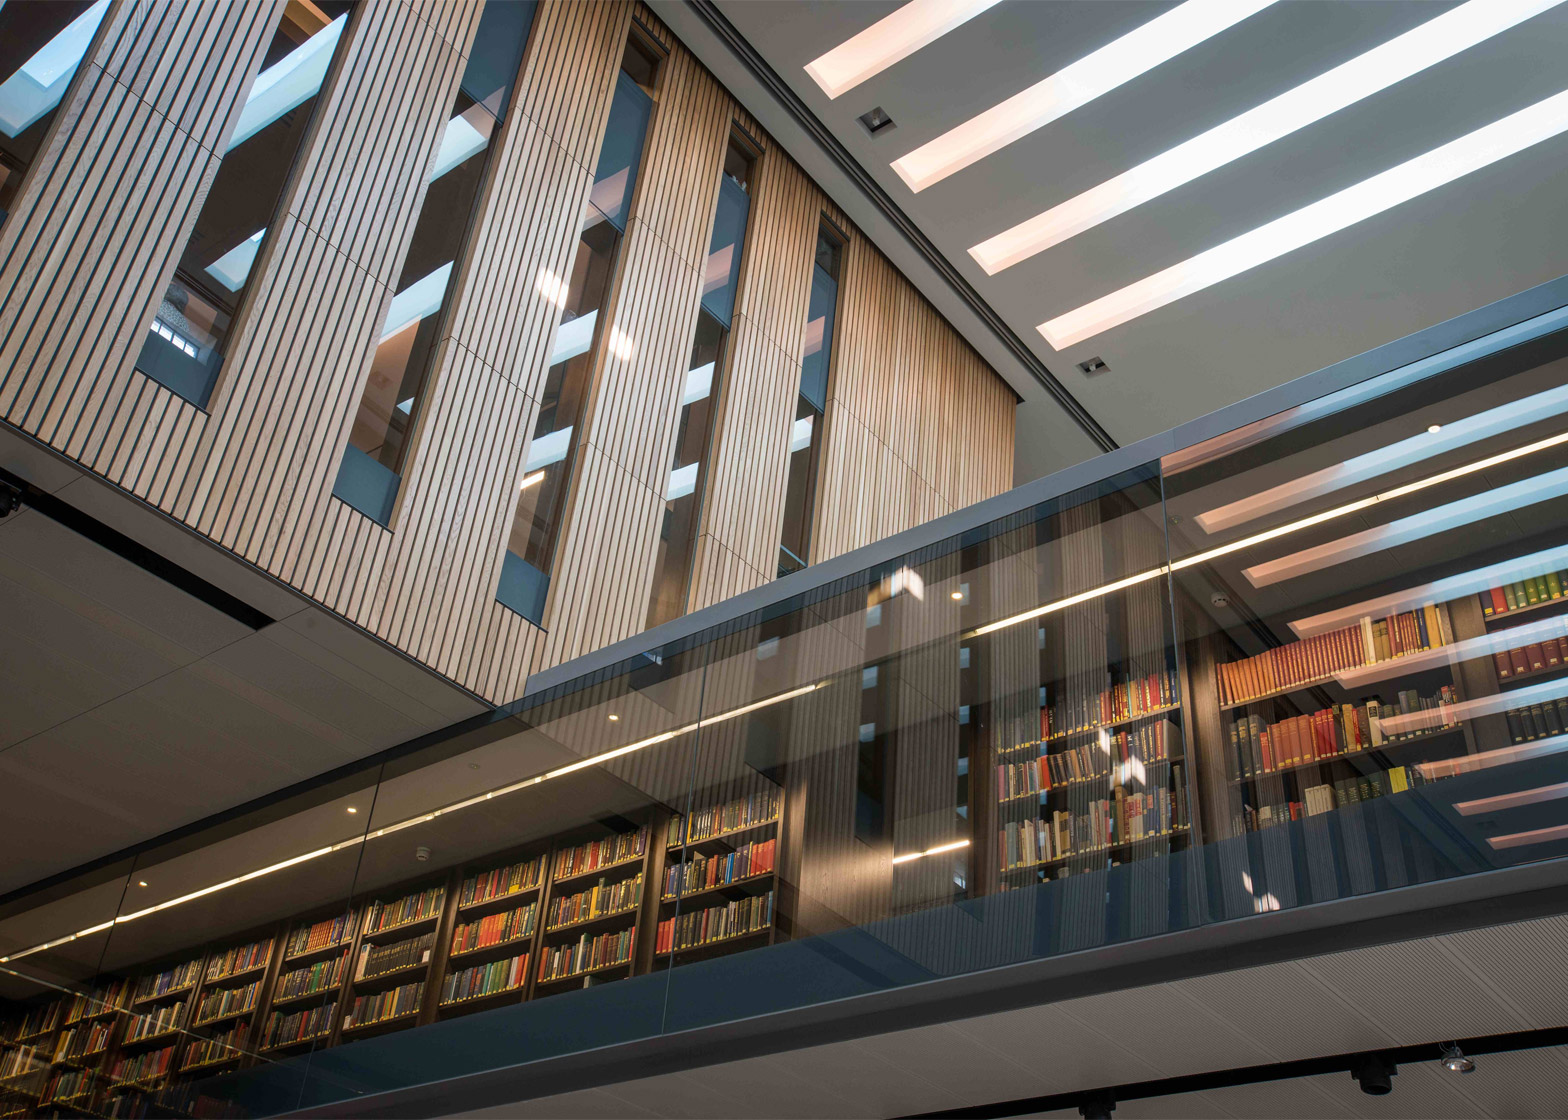 Weston Library, University of Oxford by WilkinsonEyre. Photograph by John Cairns